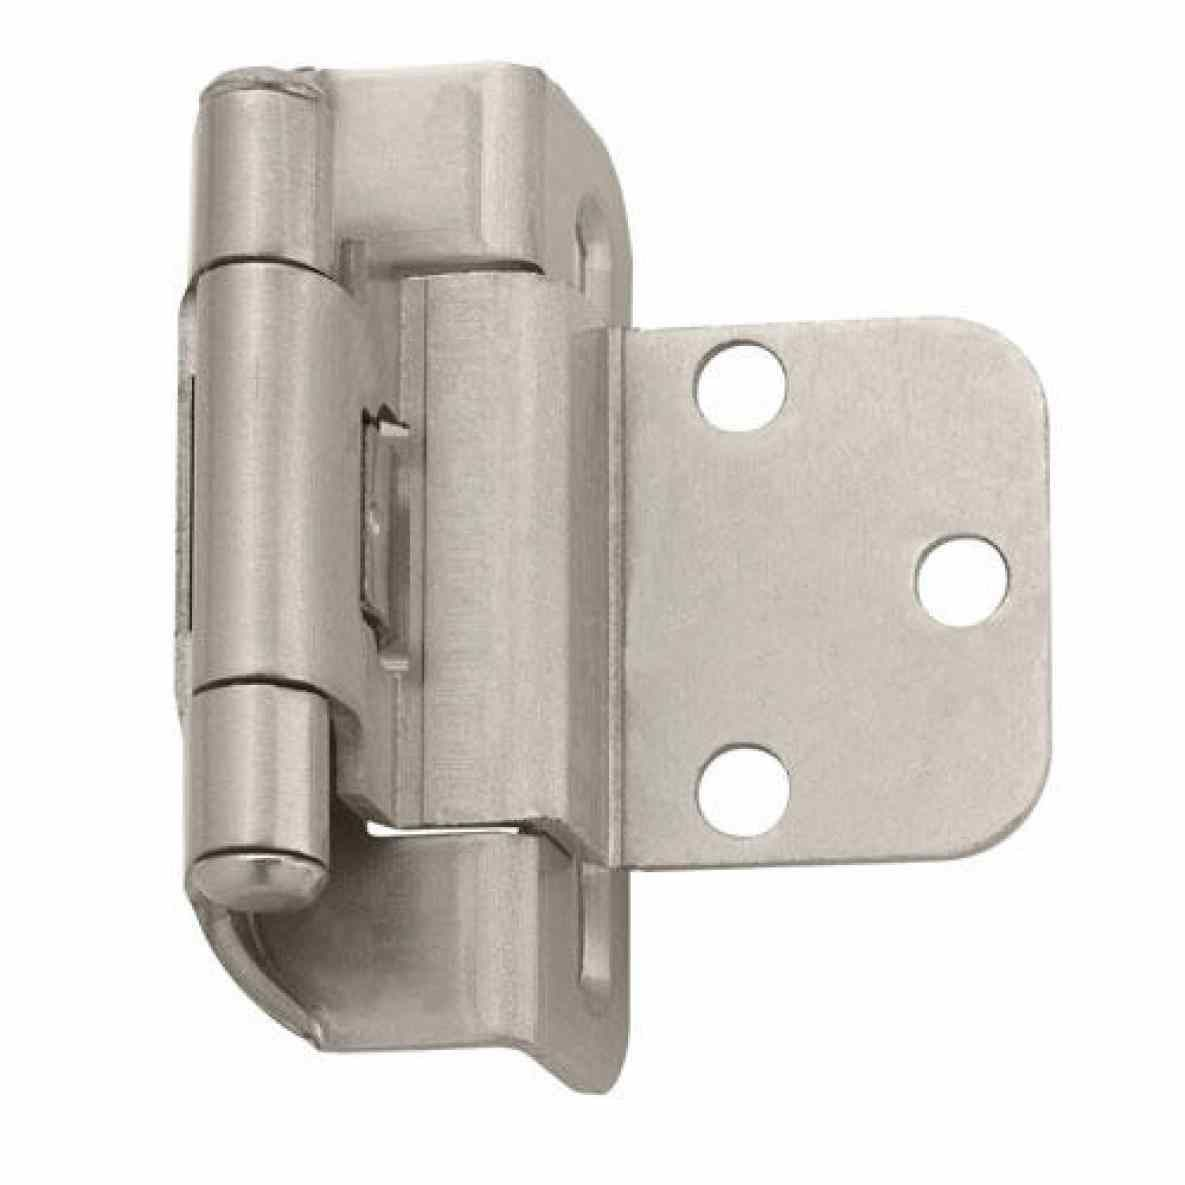 Decoration How Inset Cabinet Door Hinges To Fix Cabinet Doors Creative Cabinets Decoration Adjusting Door Inset Hinges Hinges For Cabinets Self Closing Hinges